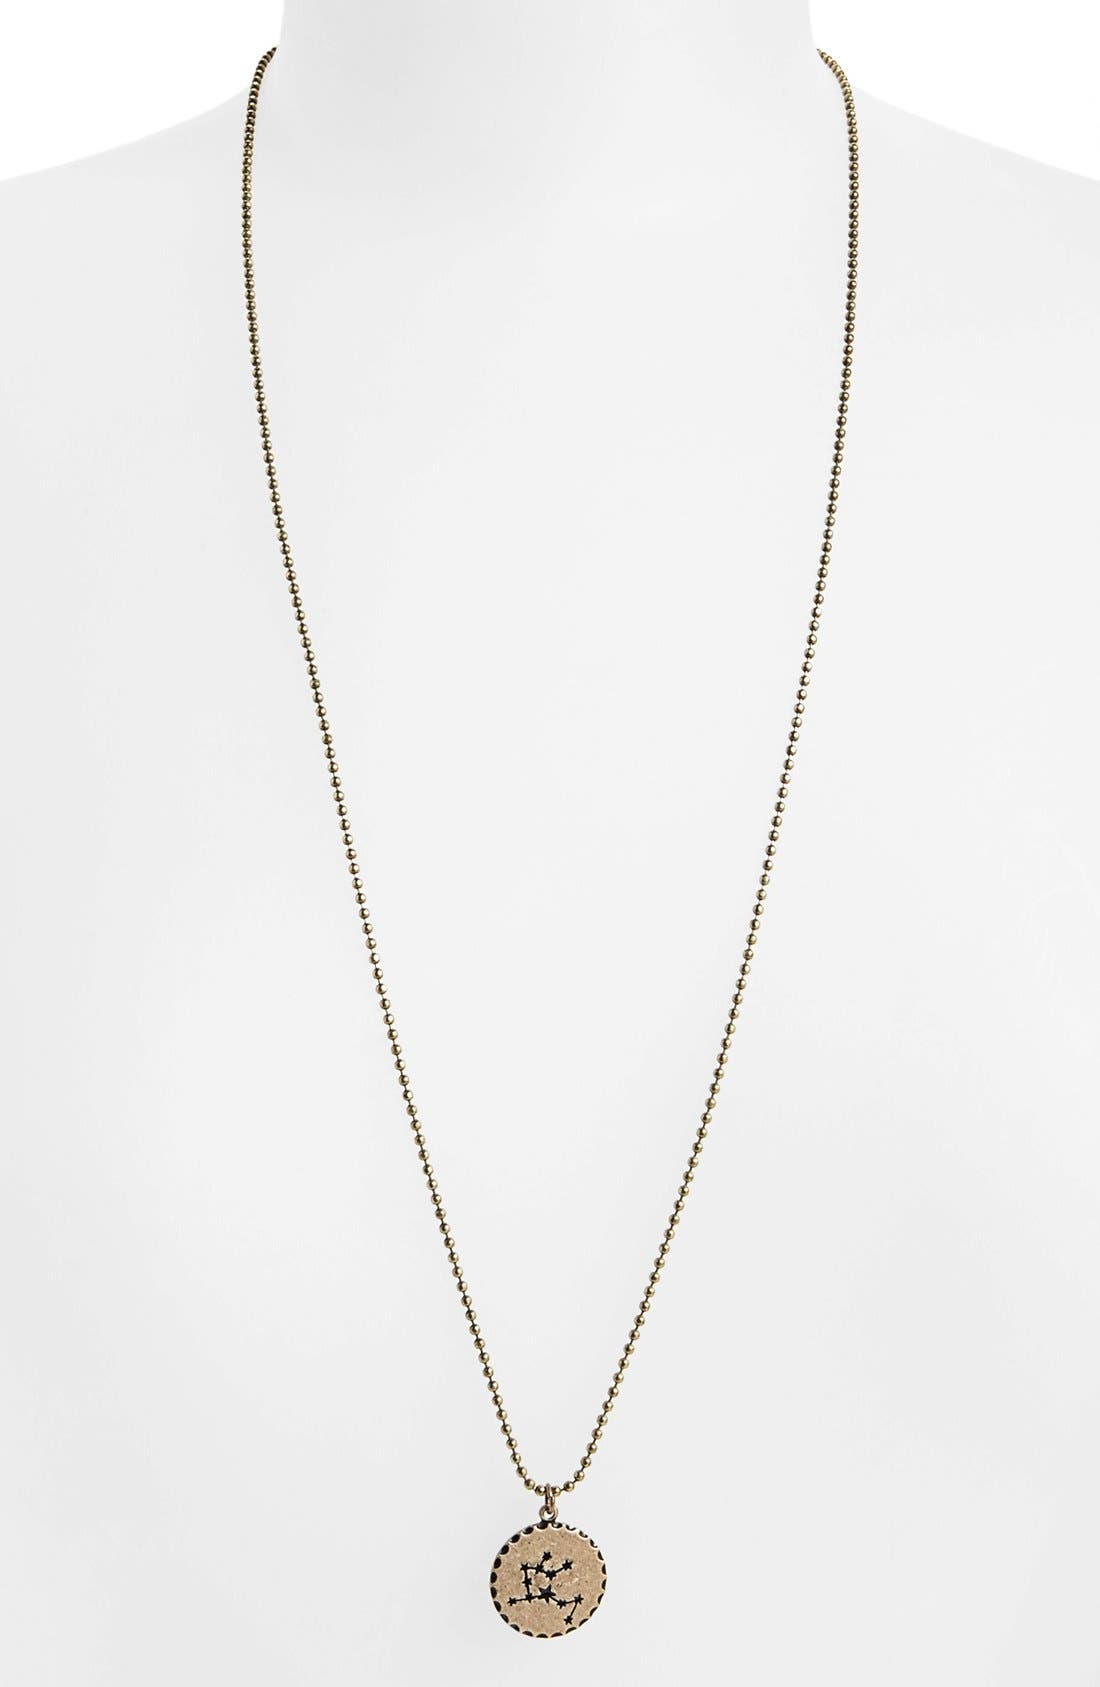 Alternate Image 1 Selected - Bonnie Jonas 'Zodiac Constellation' Pendant Necklace